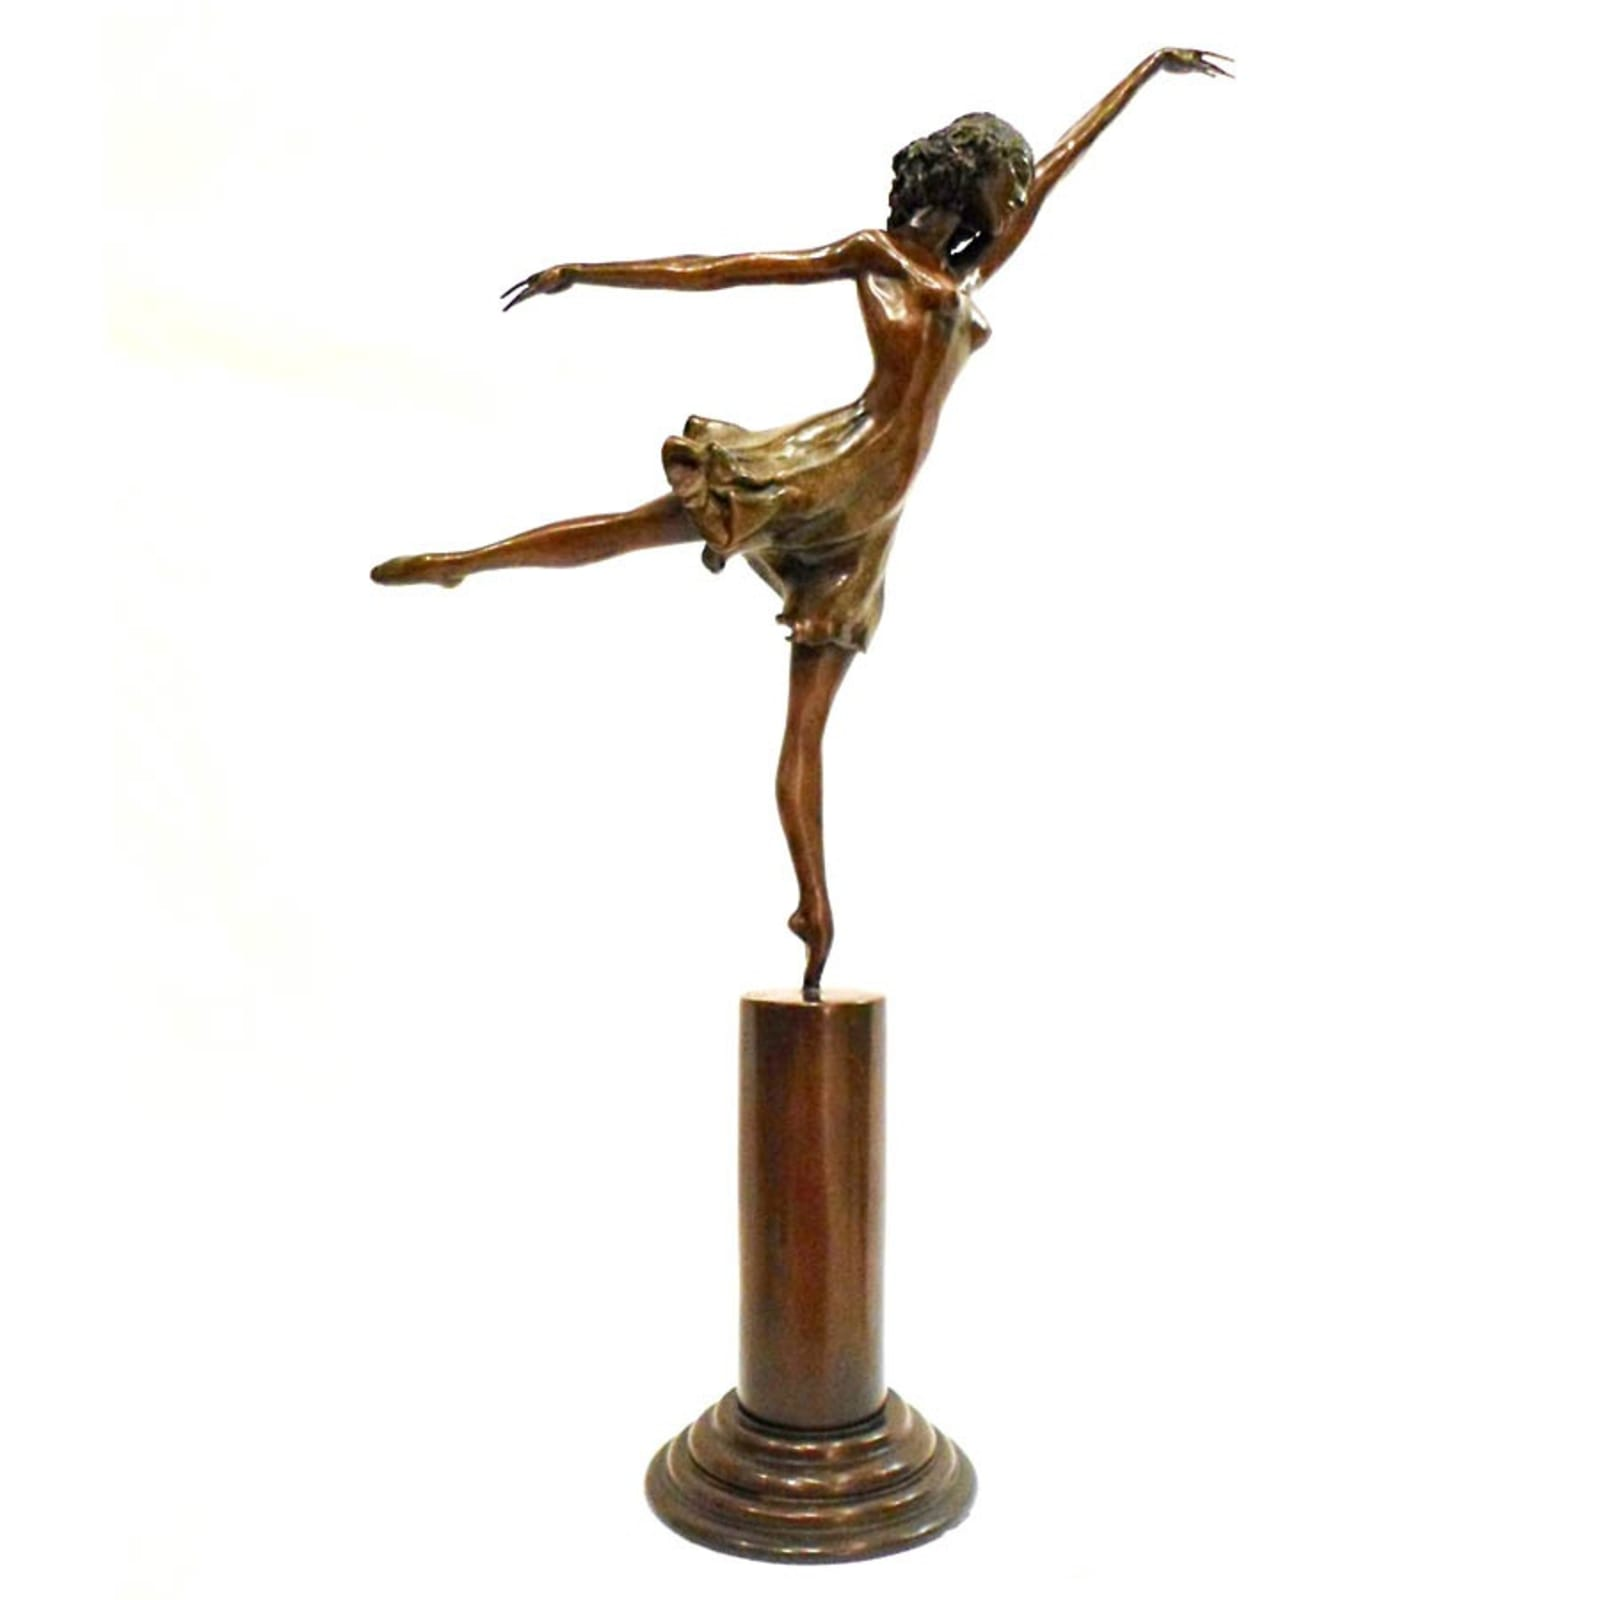 A LIFE IN THE ARTS - In Celebration of Dancer & Sculptor Tom Merrifield